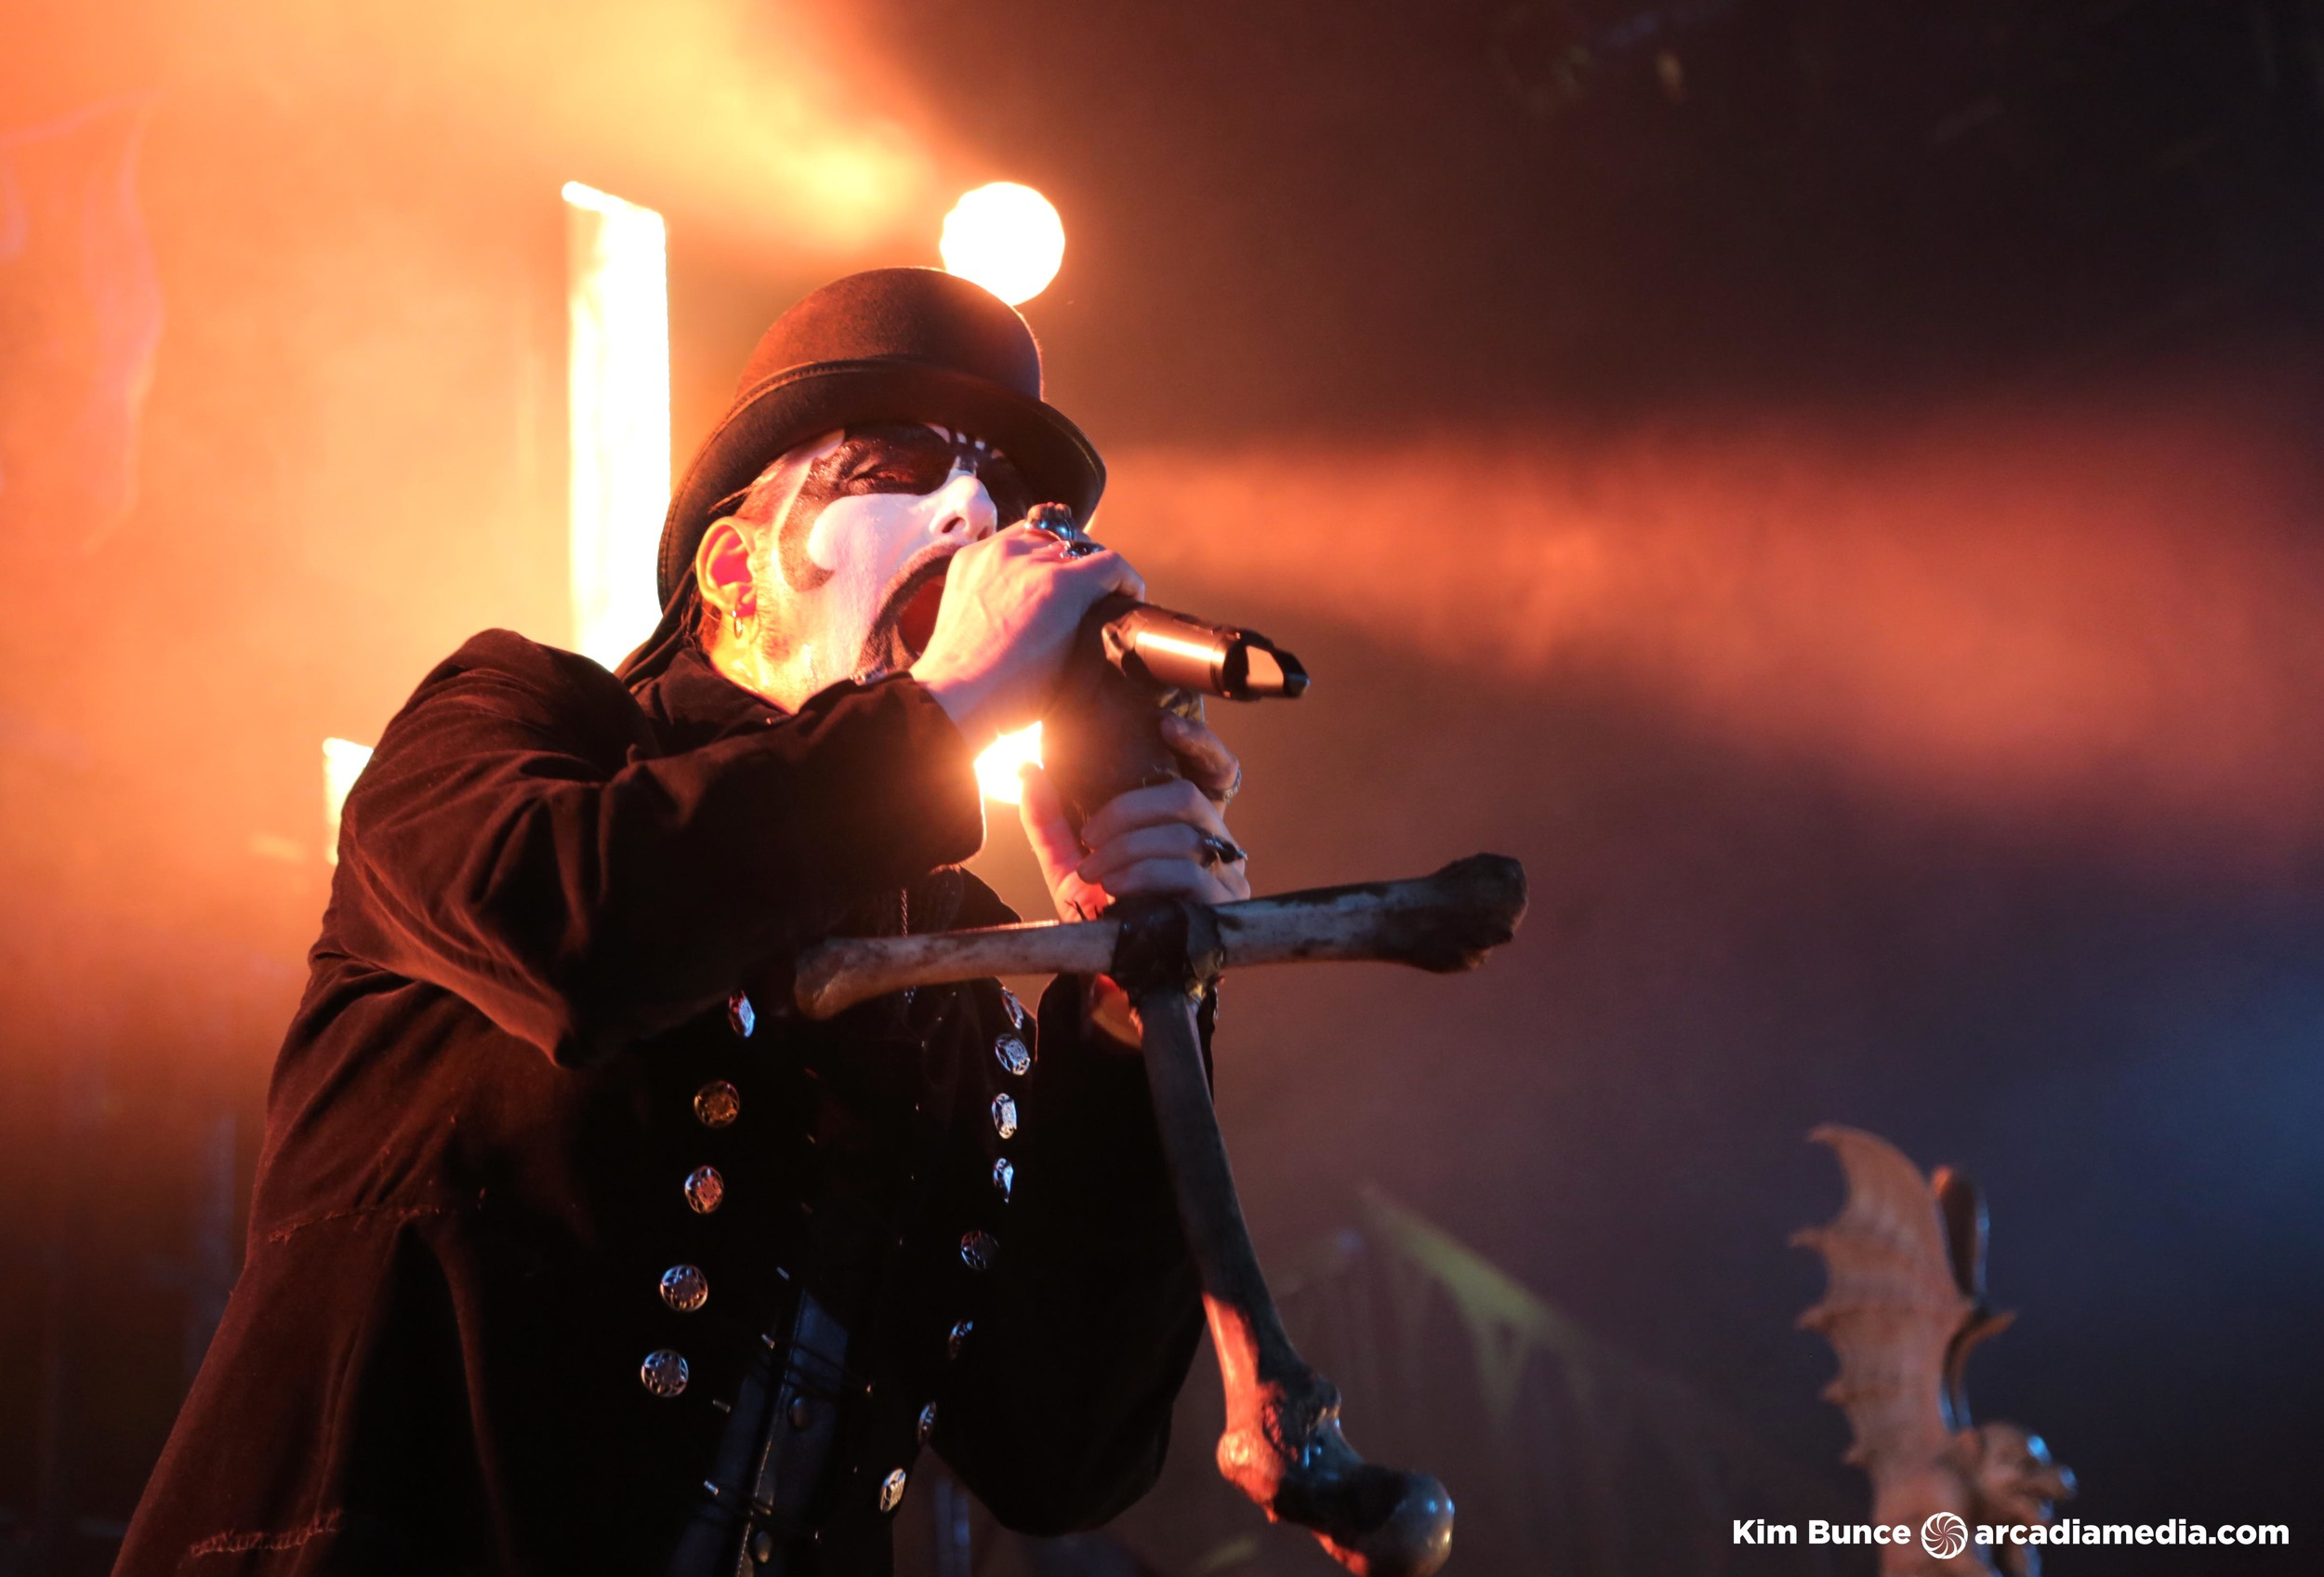 2015-11-20-kingdiamond.jpg